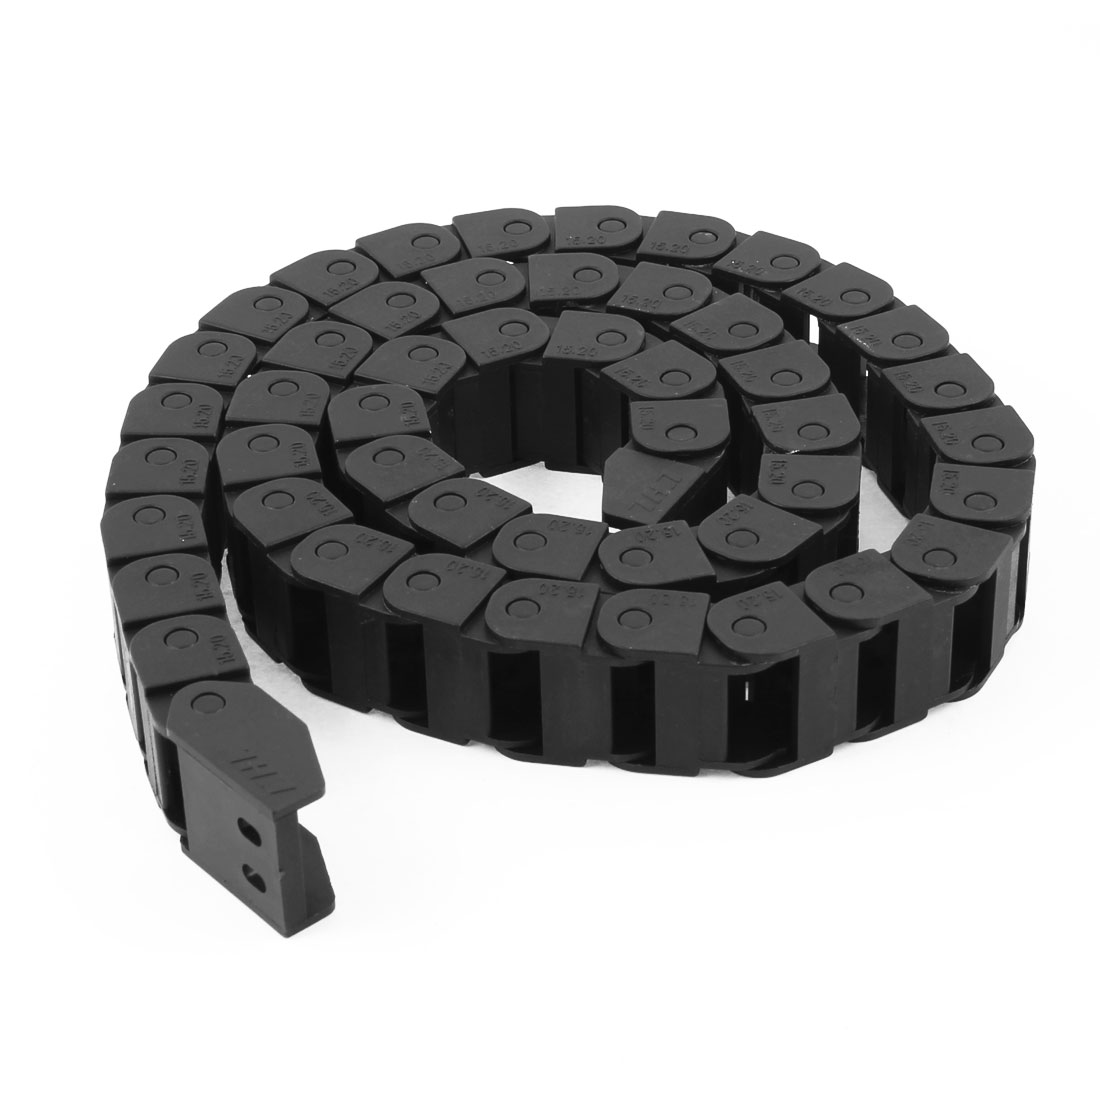 Machine Tool 1 Meter 3.3Ft Length Plastic Cable Drag Chain 15mm x 20mm